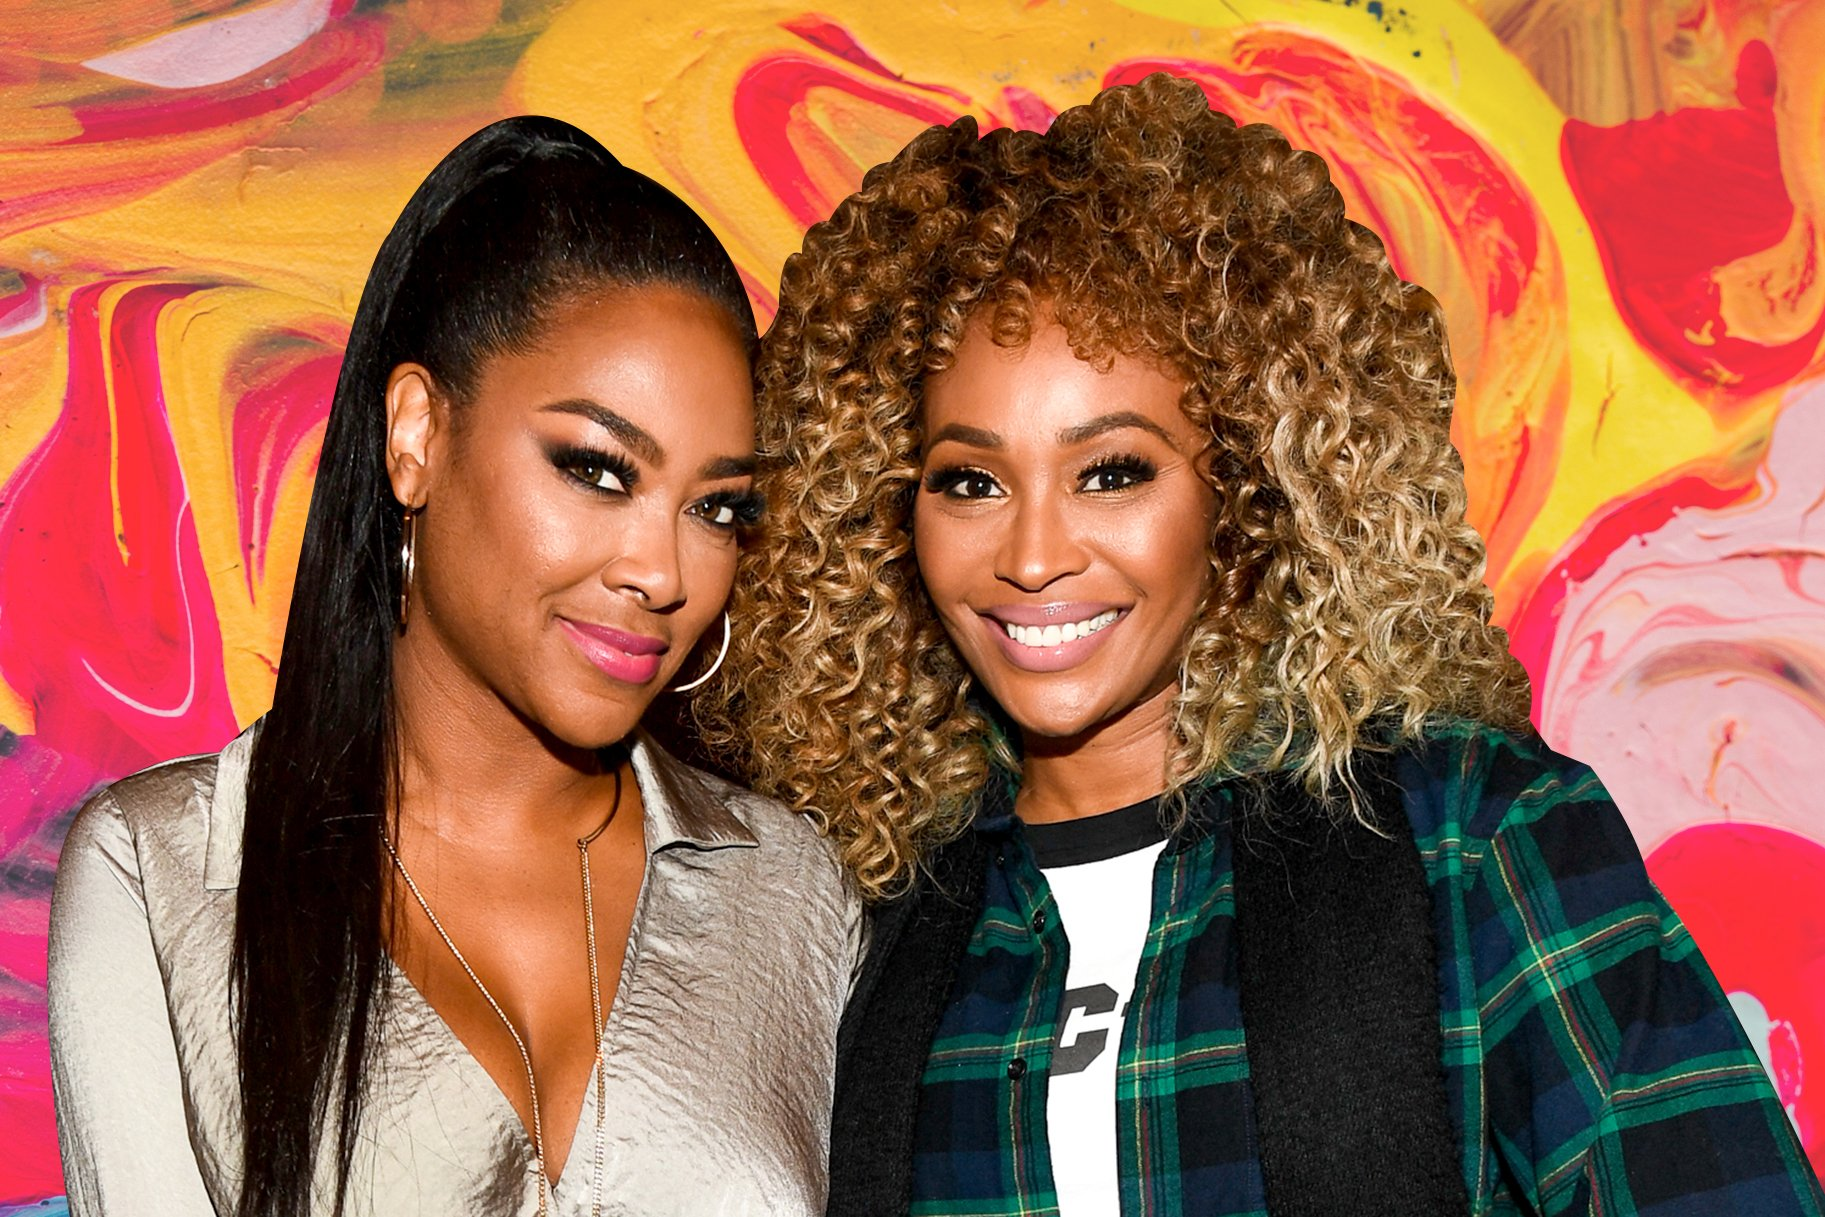 Kenya Moore Flaunts Her Love For Cynthia Bailey - Check Out The Post Here